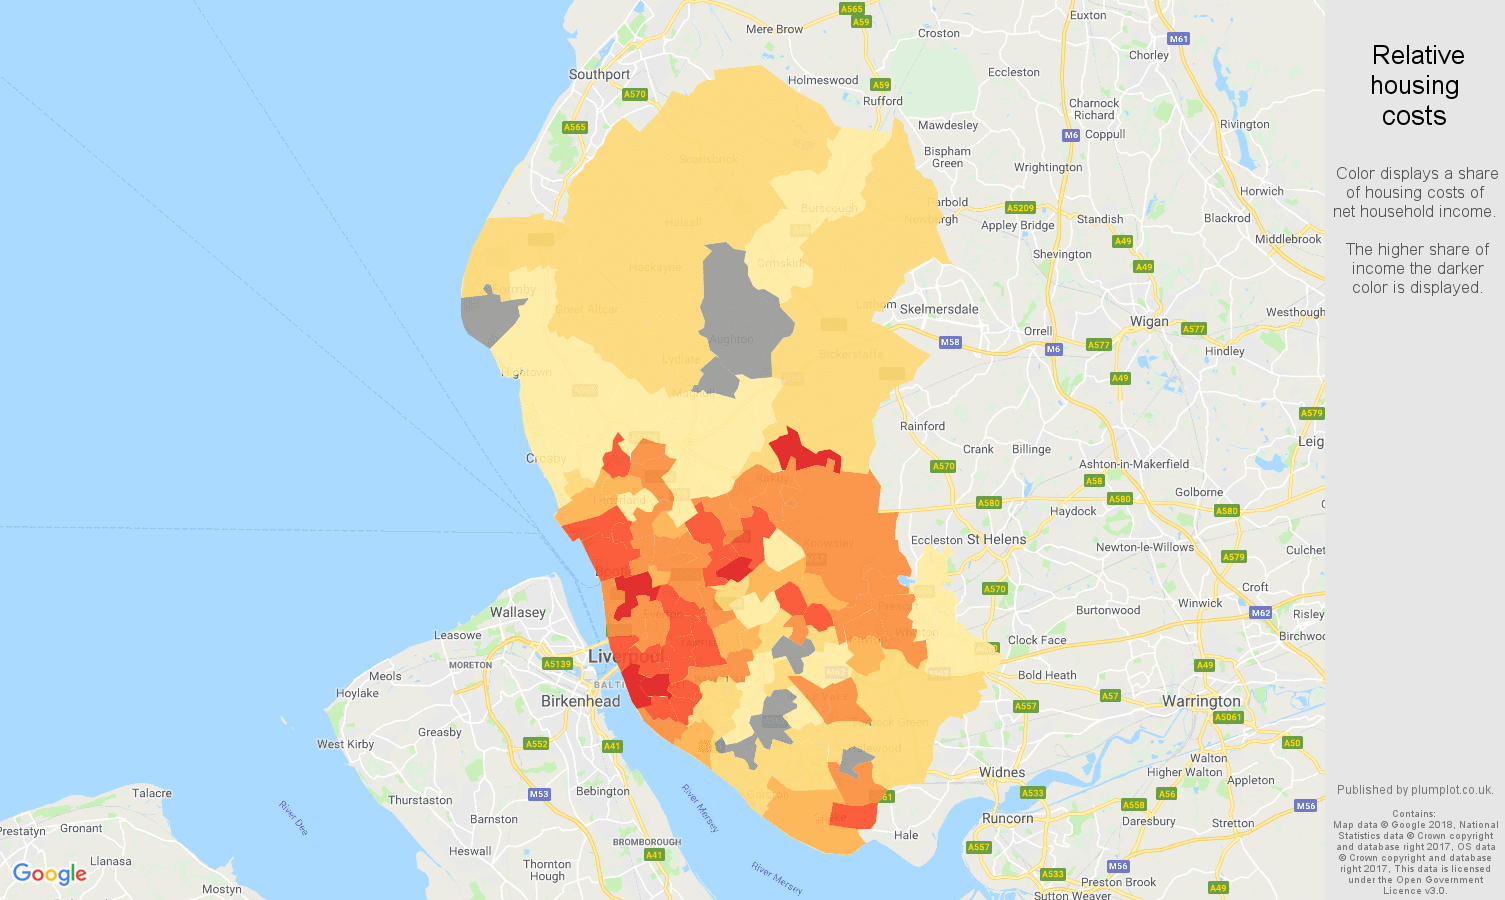 Liverpool relative housing costs map